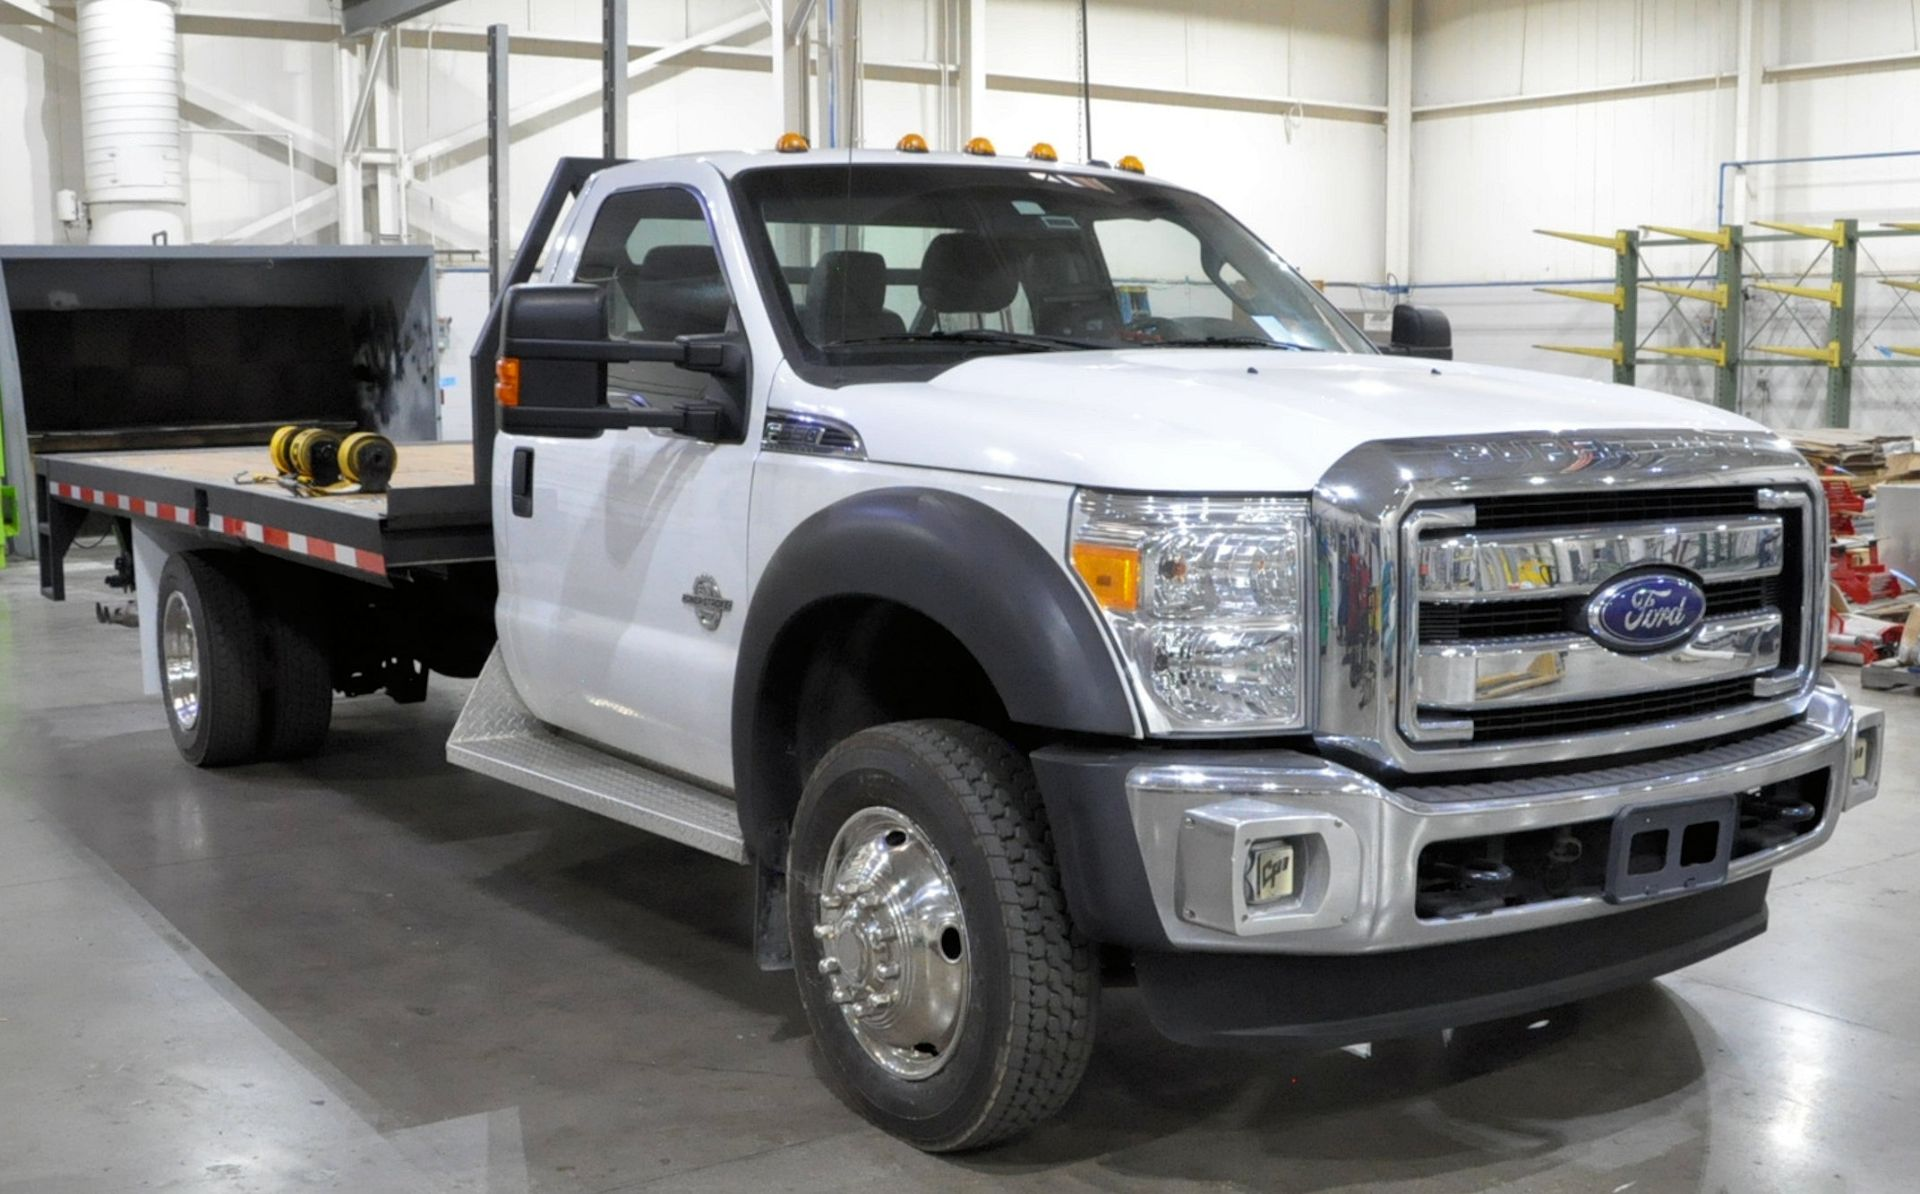 2015 Ford F550 XLT Super Duty Single Axle Dual Wheeled Stake Truck, 16' Wood Bed, Air Ride, Diesel - Image 2 of 10